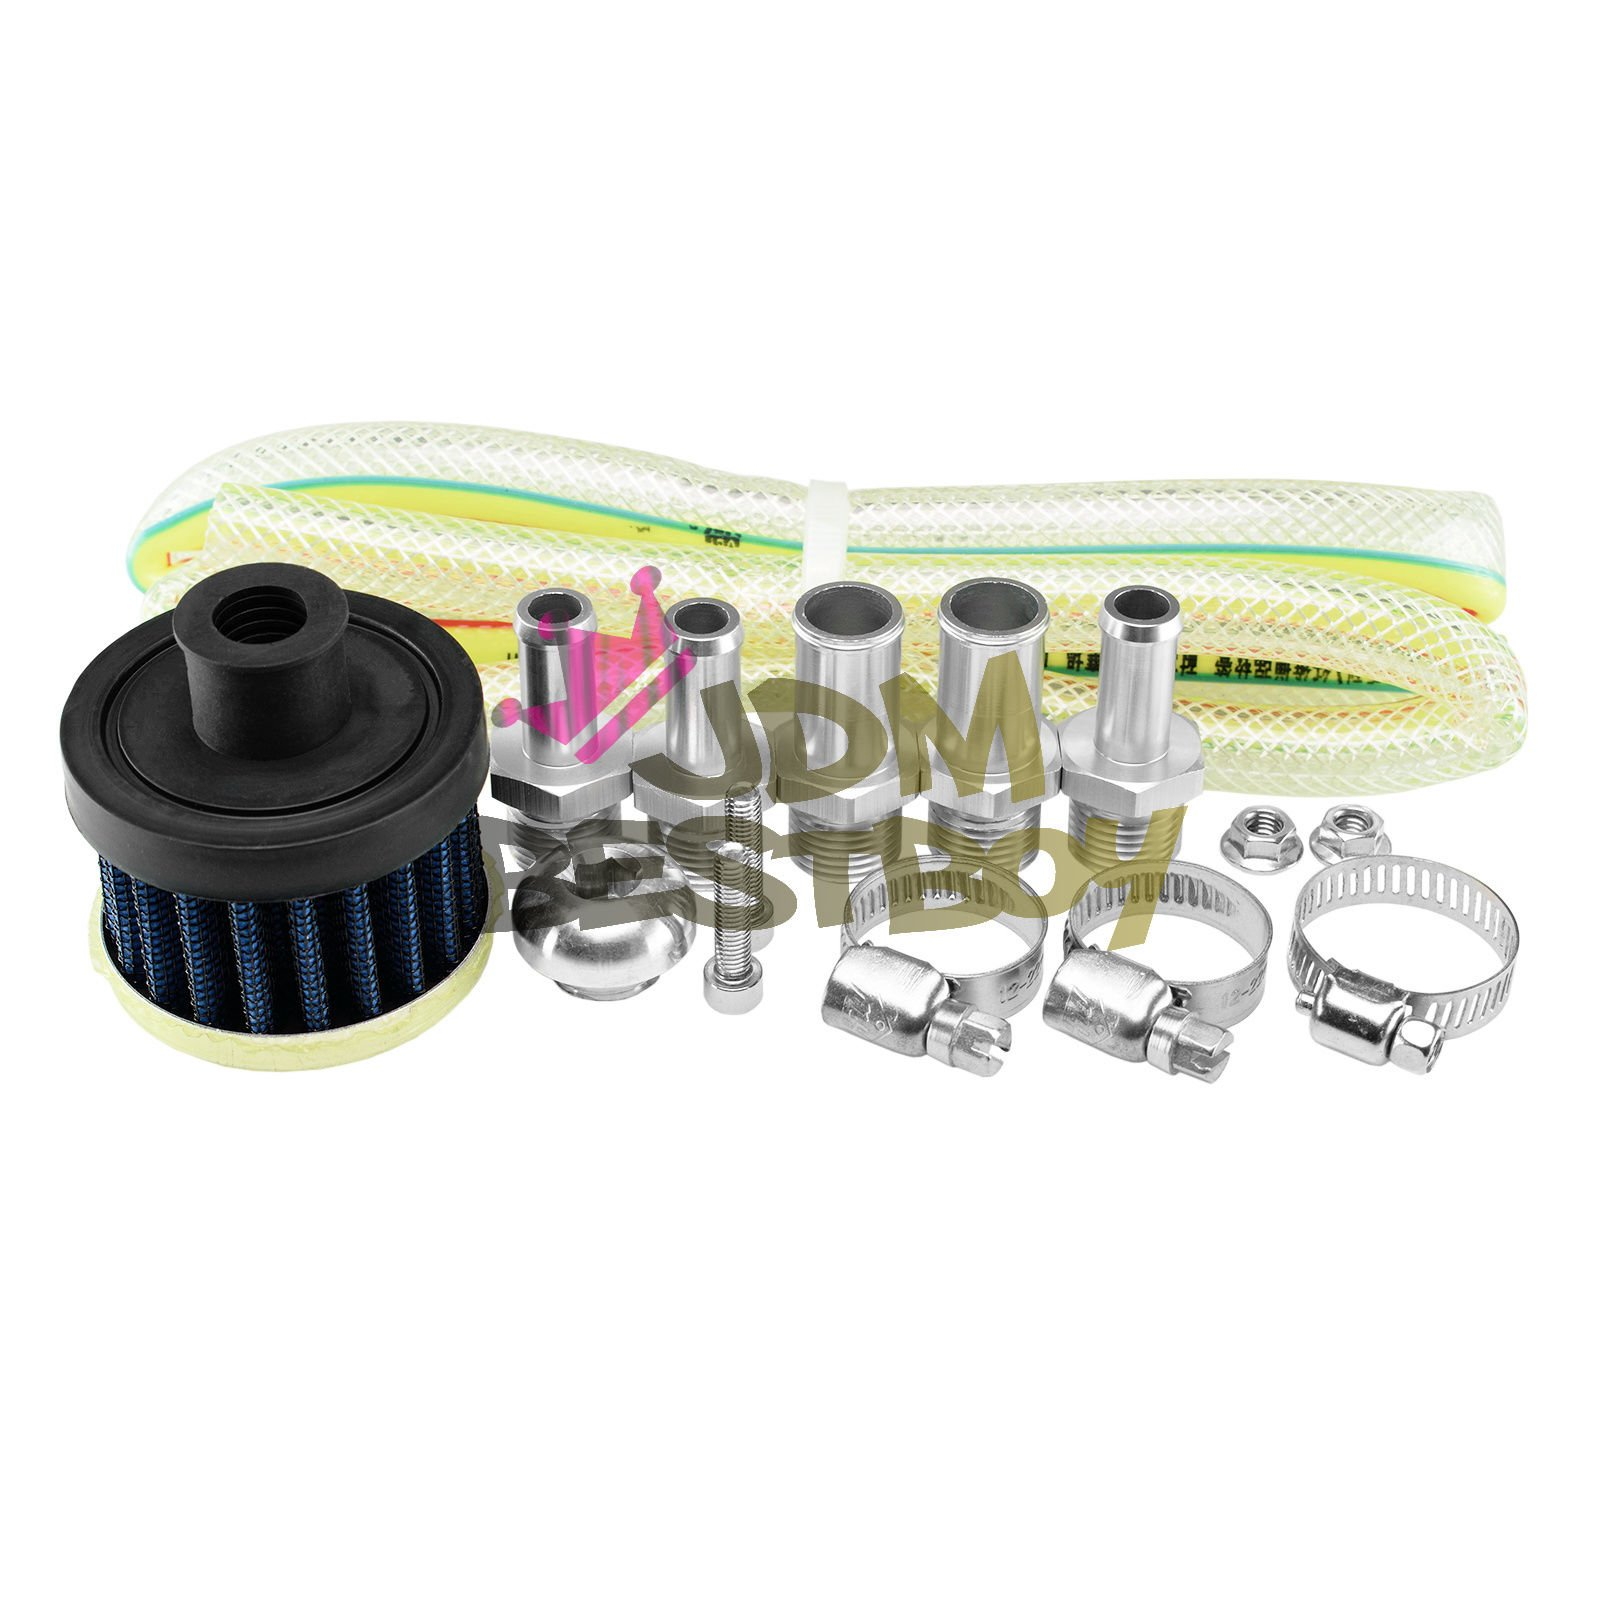 Black Billet Aluminum Engine Oil Catch Reservoir Breather Tank Can Cylinder With Filter #3 by JDMBESTBOY (Image #2)